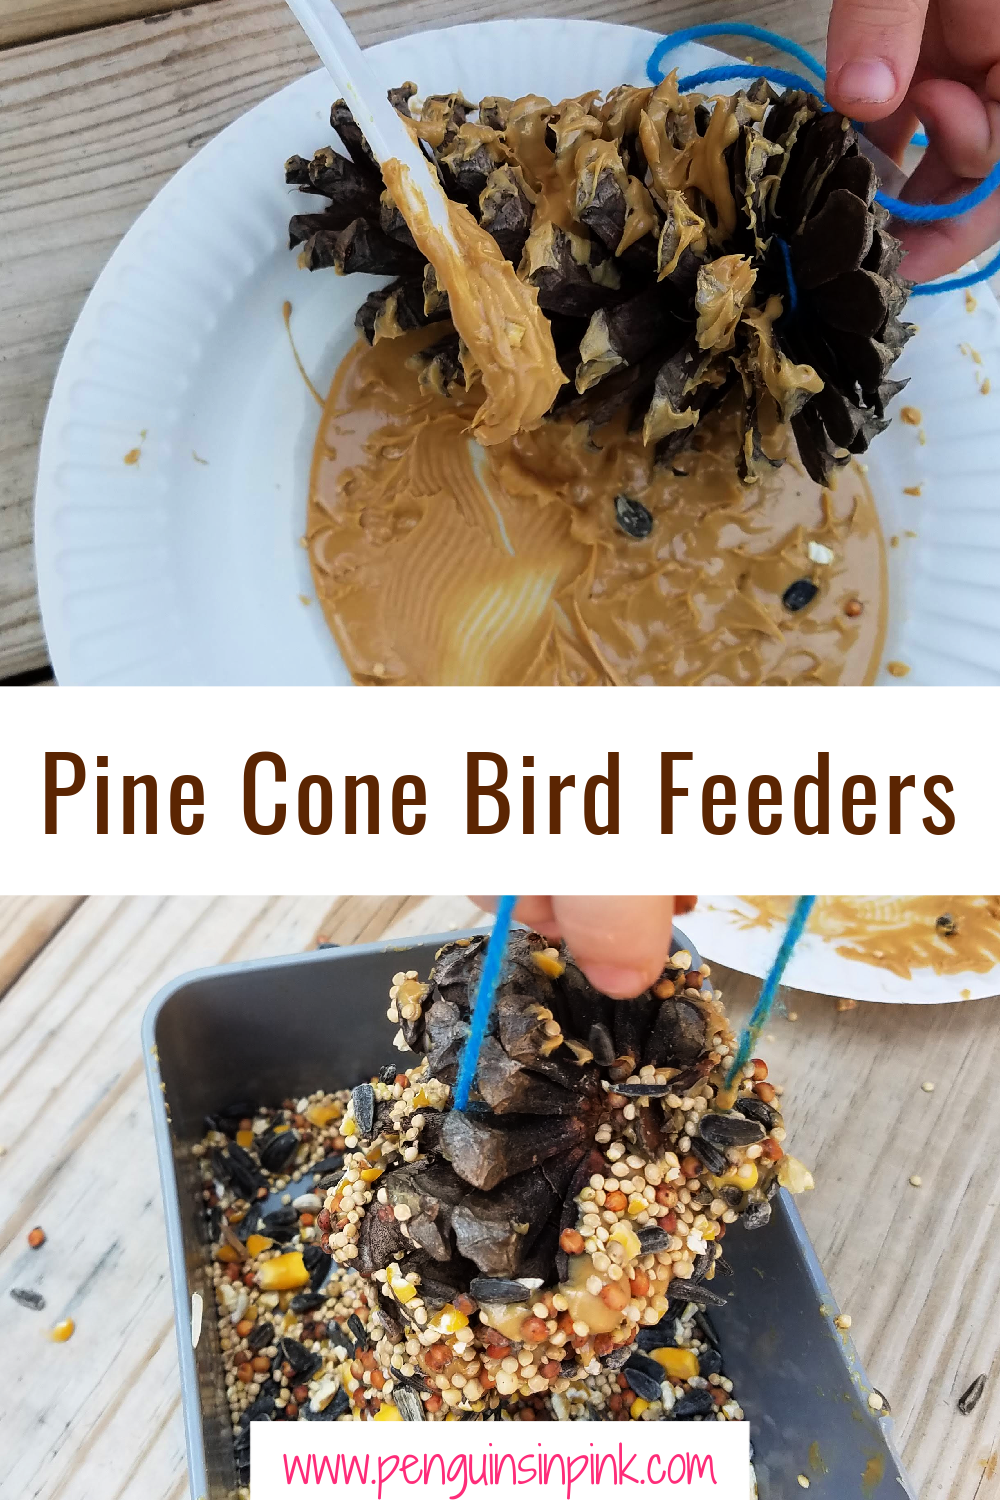 Pine Cone Bird Feeders are an easy and fun DIY project for kids. All you need is pine cones, peanut butter and bird seed